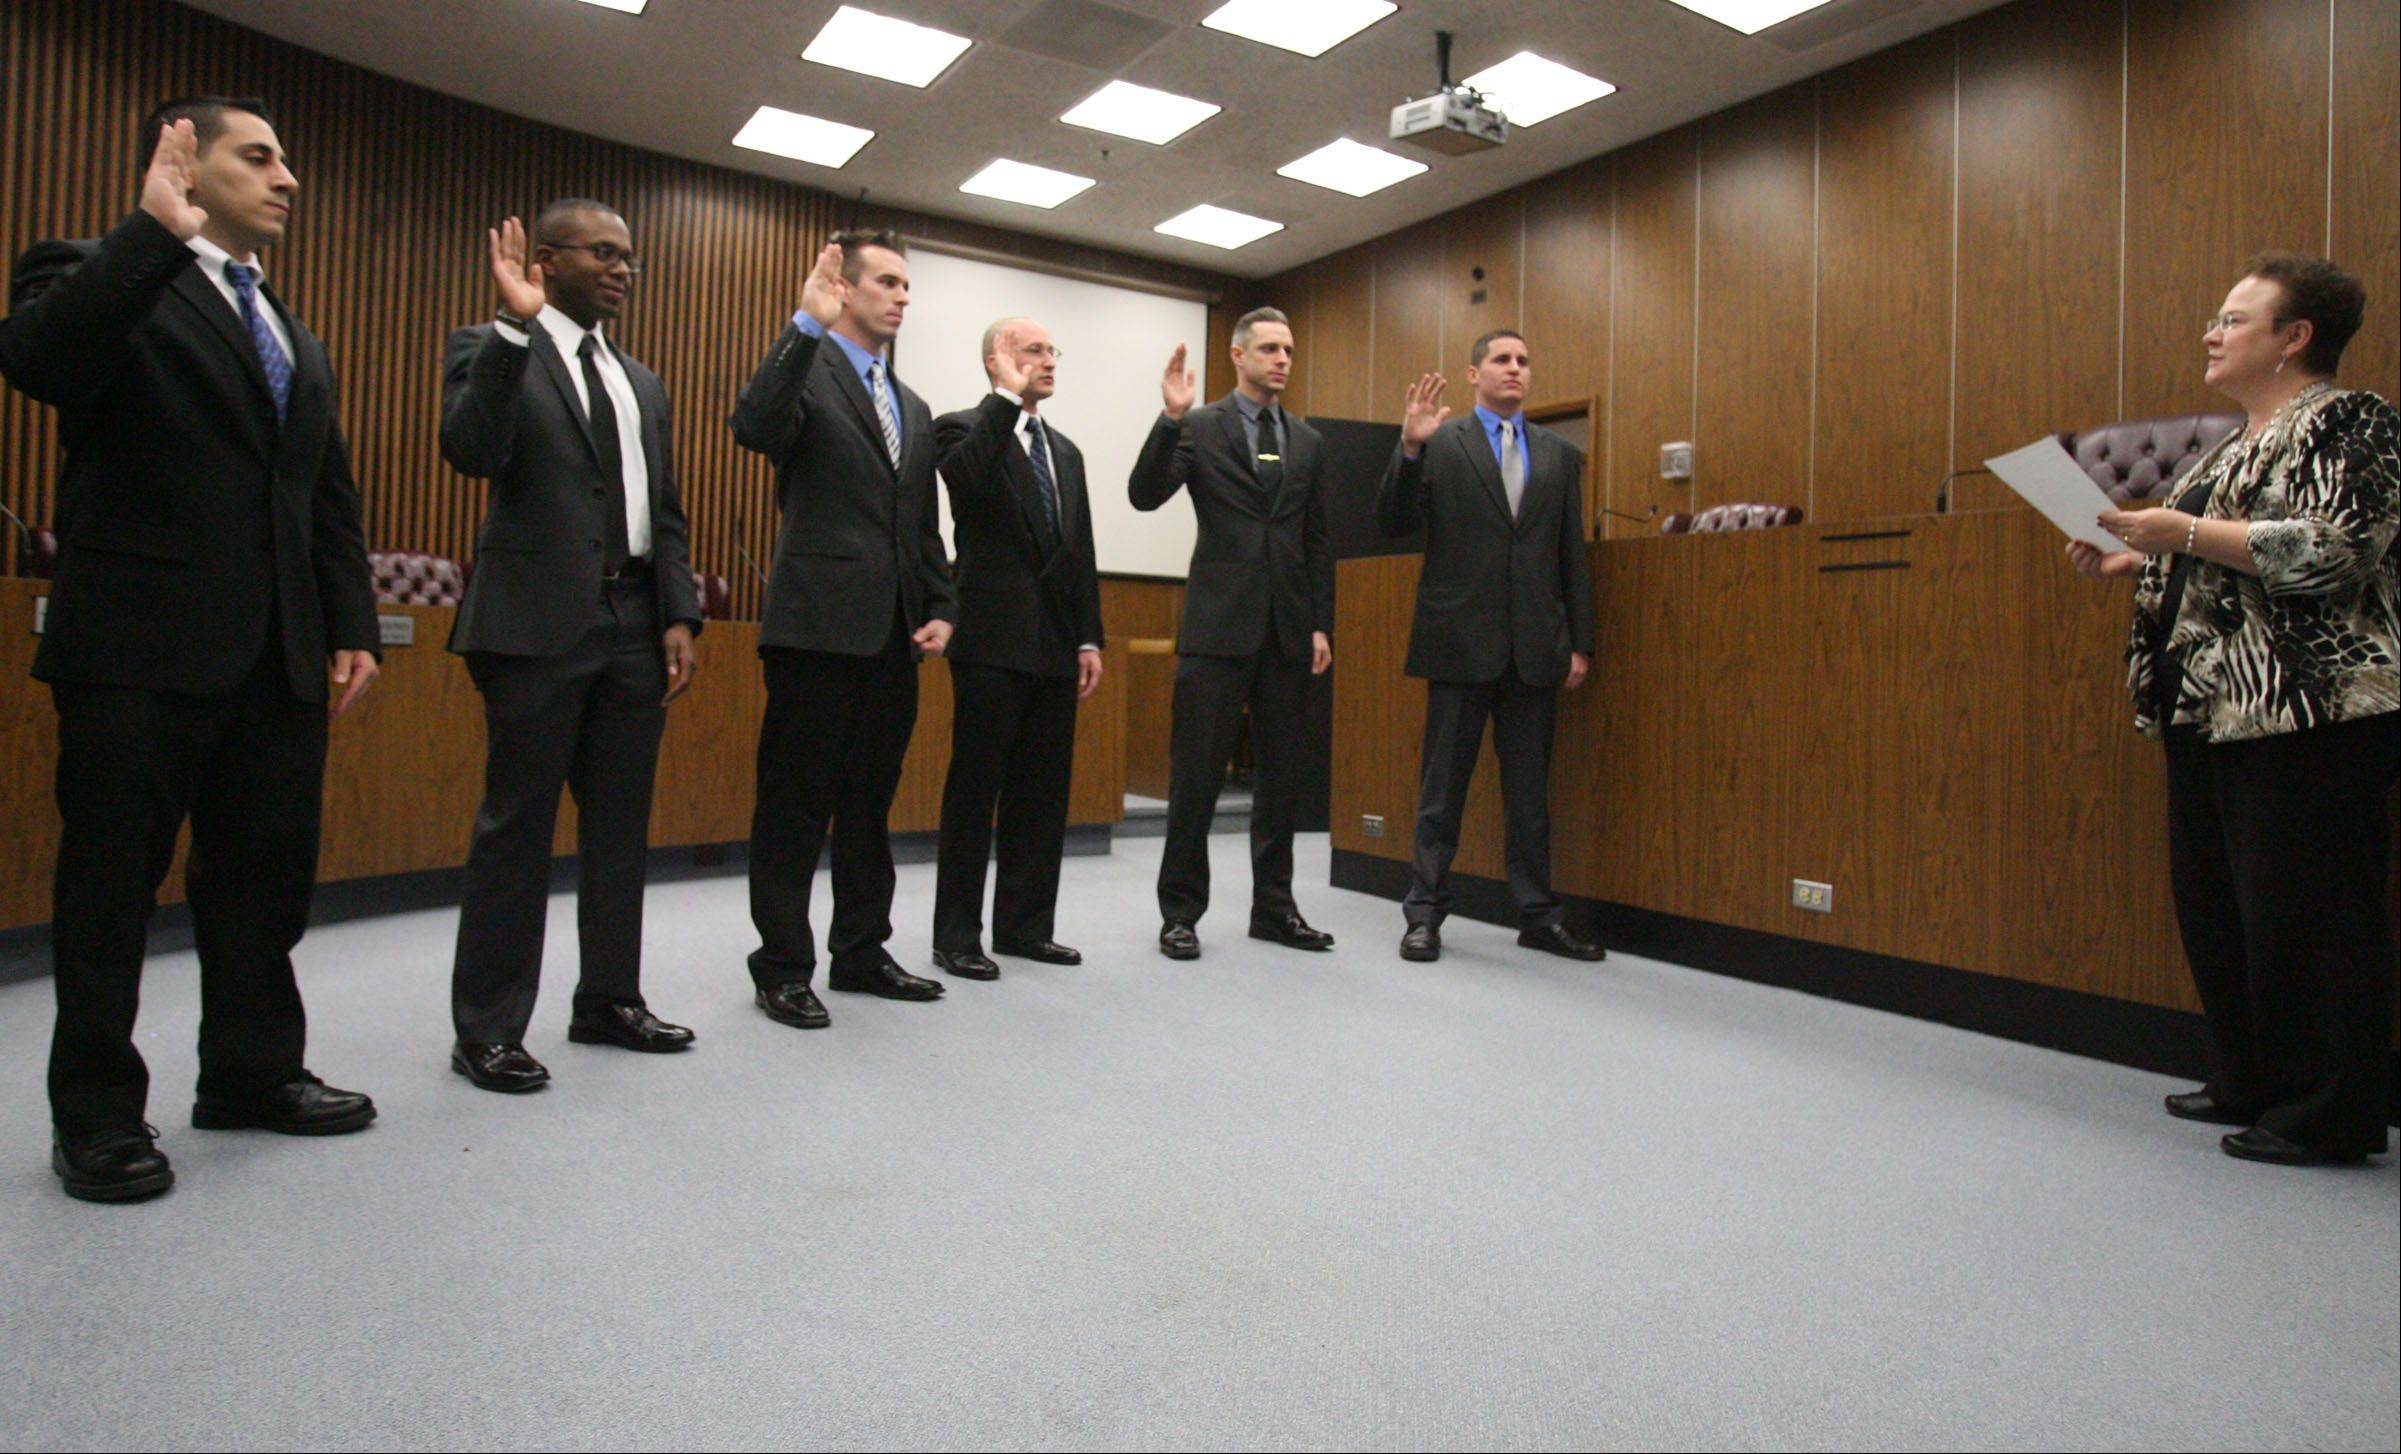 Police officers Jack Azar, left to right, William Cozzens, Jimmy Armstrong, Carl Faust, Curtis Miller and Thomas Doig were sworn in Wednesday by Des Plaines City Clerk Gloria Ludwig in the city council chambers at Des Plaines City Hall.